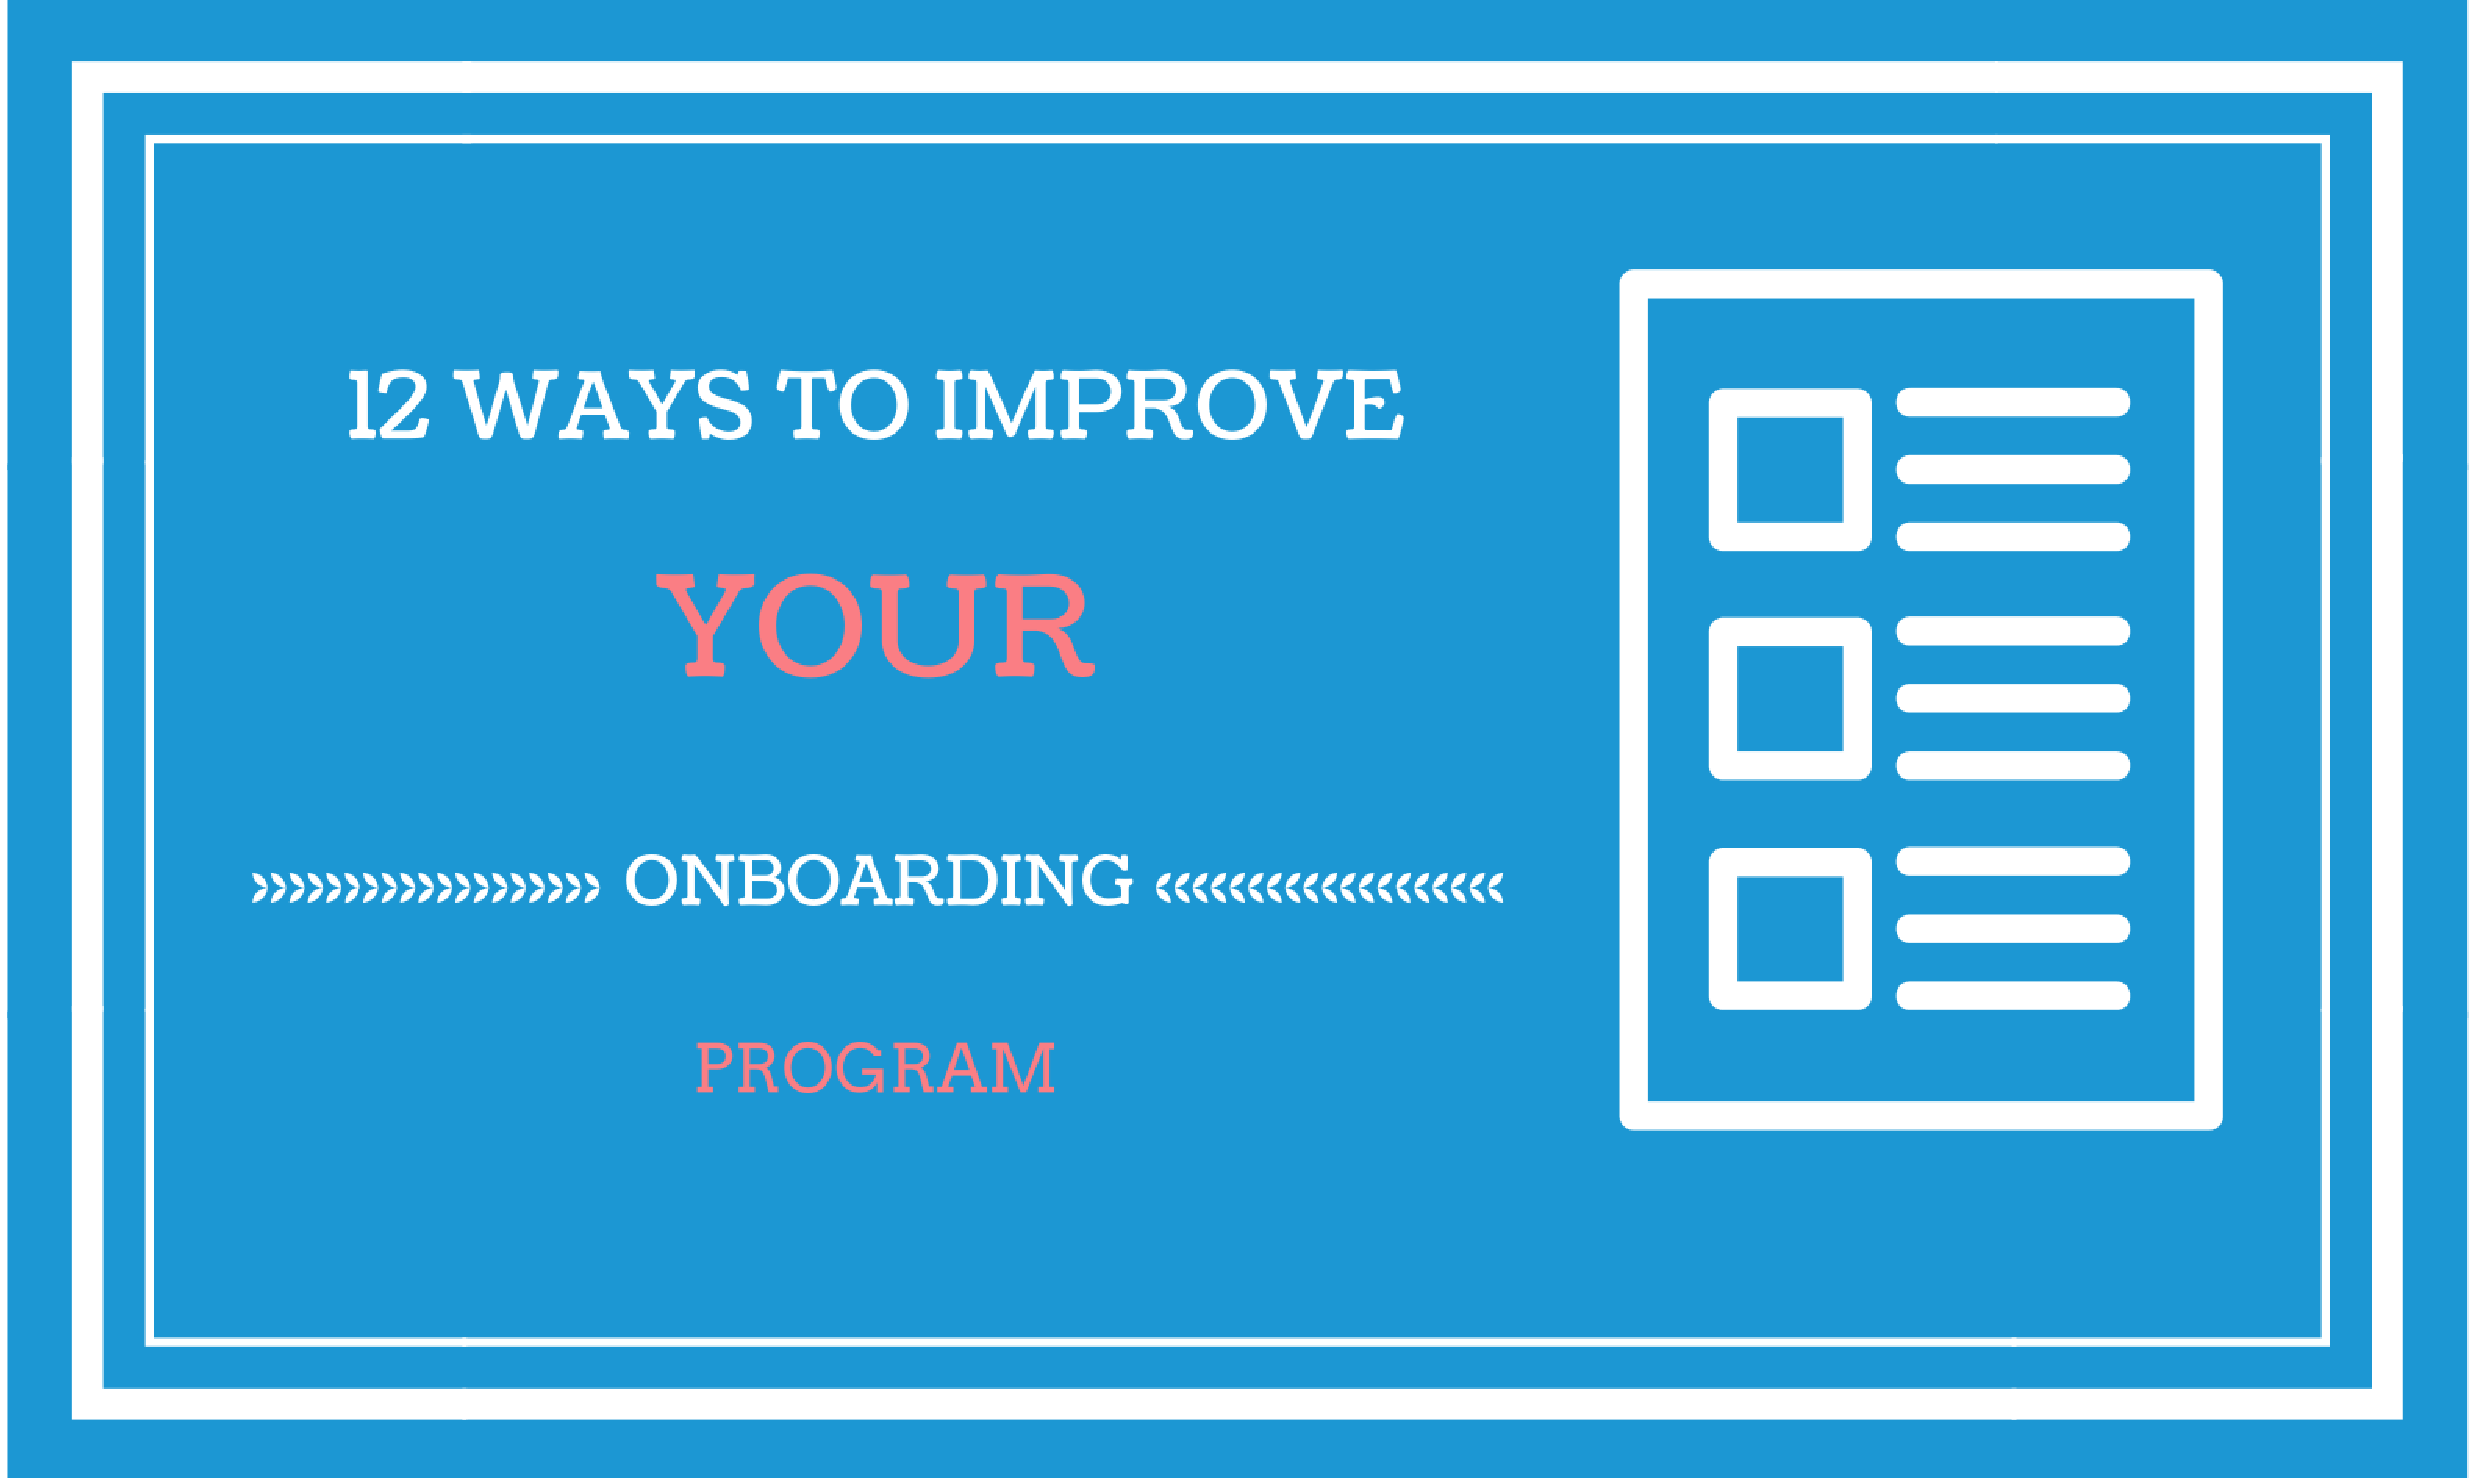 12 ways to improve your onboarding program